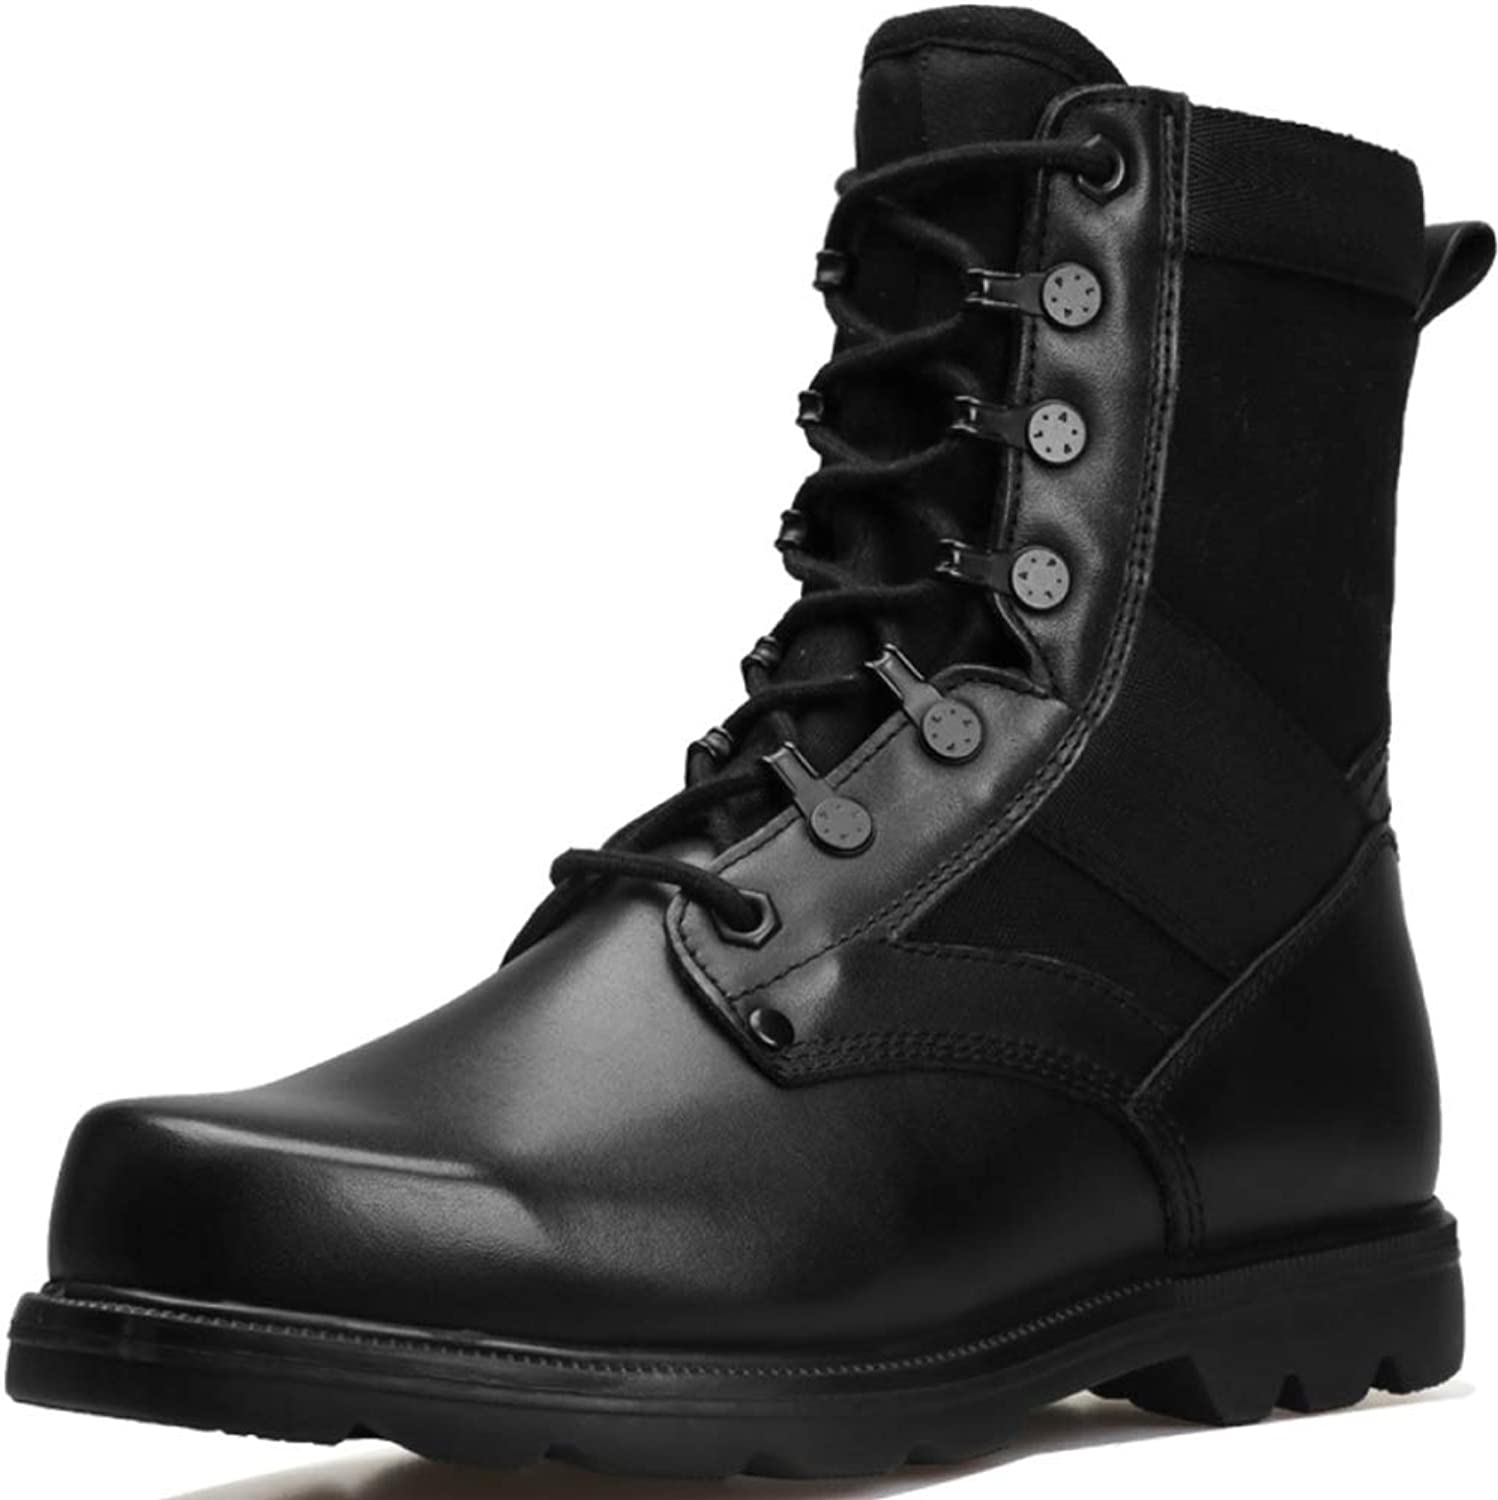 Special Forces Combat Army Boots Mens Desert Military Police Armed Tactics shoes Outdoor Hiking Mountaineering High Top Leather Footwear